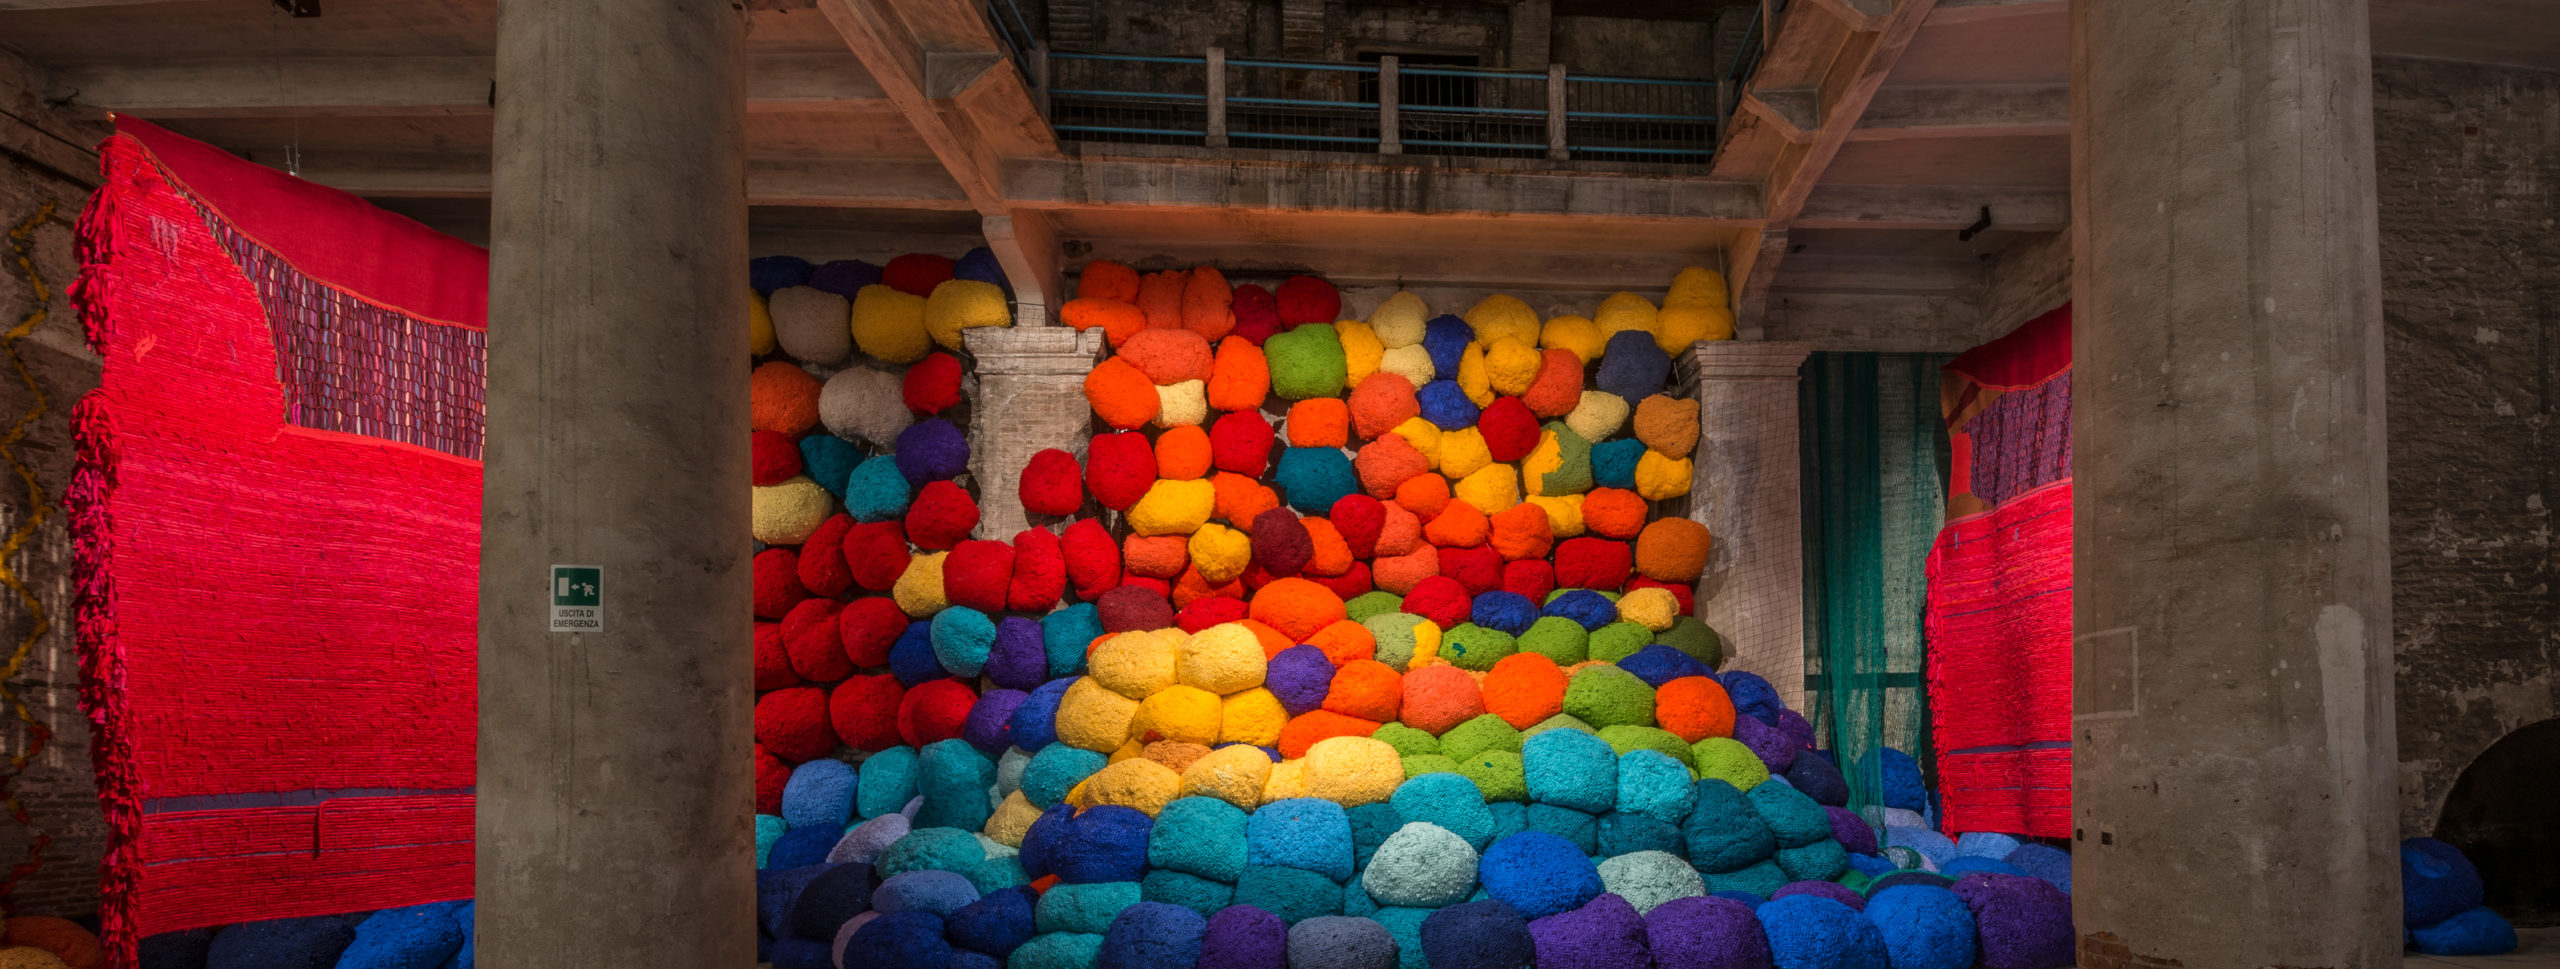 Campo Abierto (Open Field) by Sheila Hicks